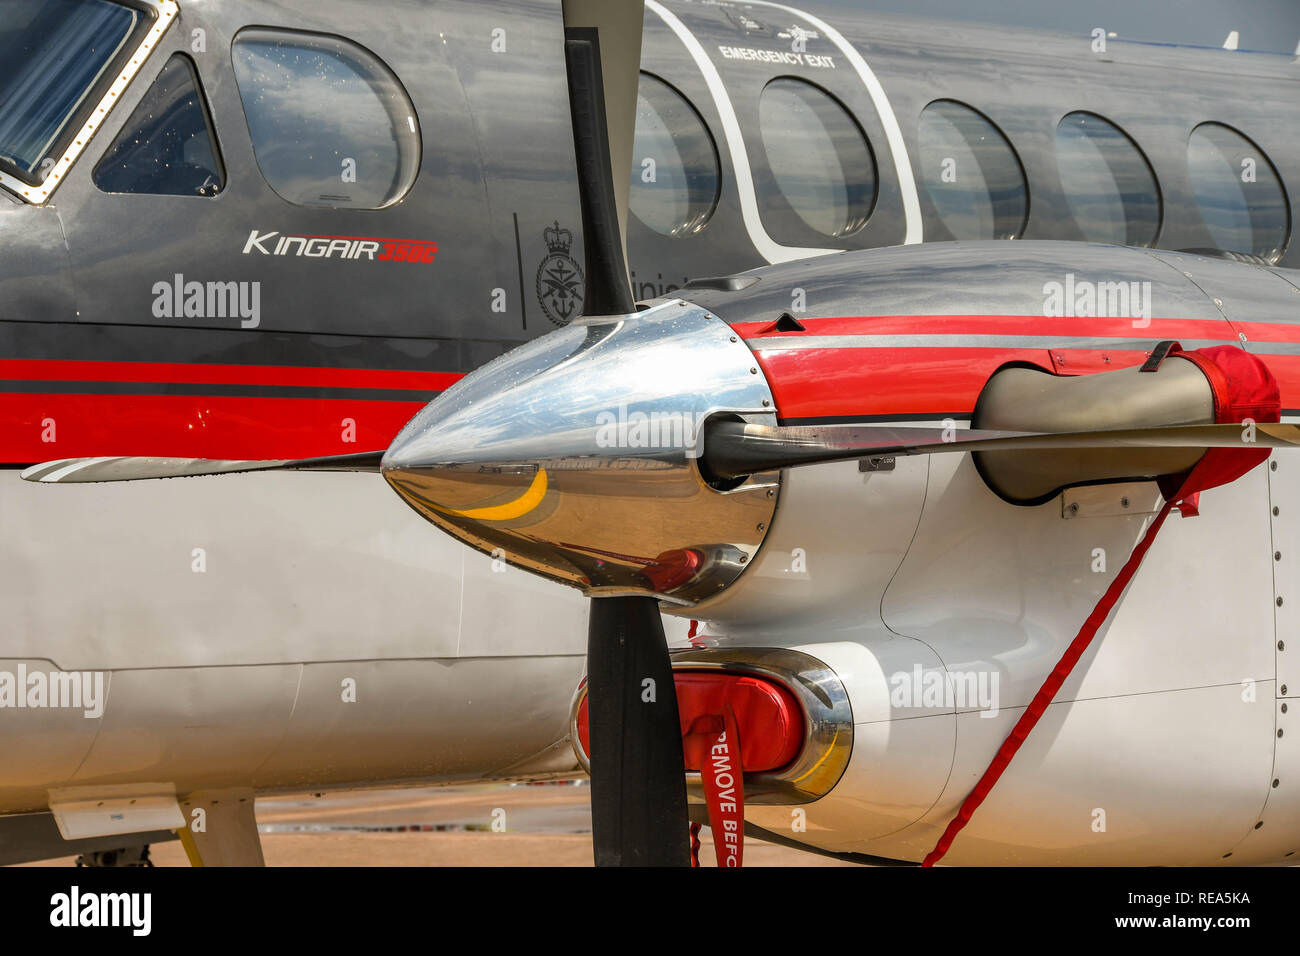 FAIRFORD, ENGLAND - JULY 2018: Close up view of the engine and propellor blades of a Raytheon Textron Aviaition King Air 350 turboprop aircraft - Stock Image